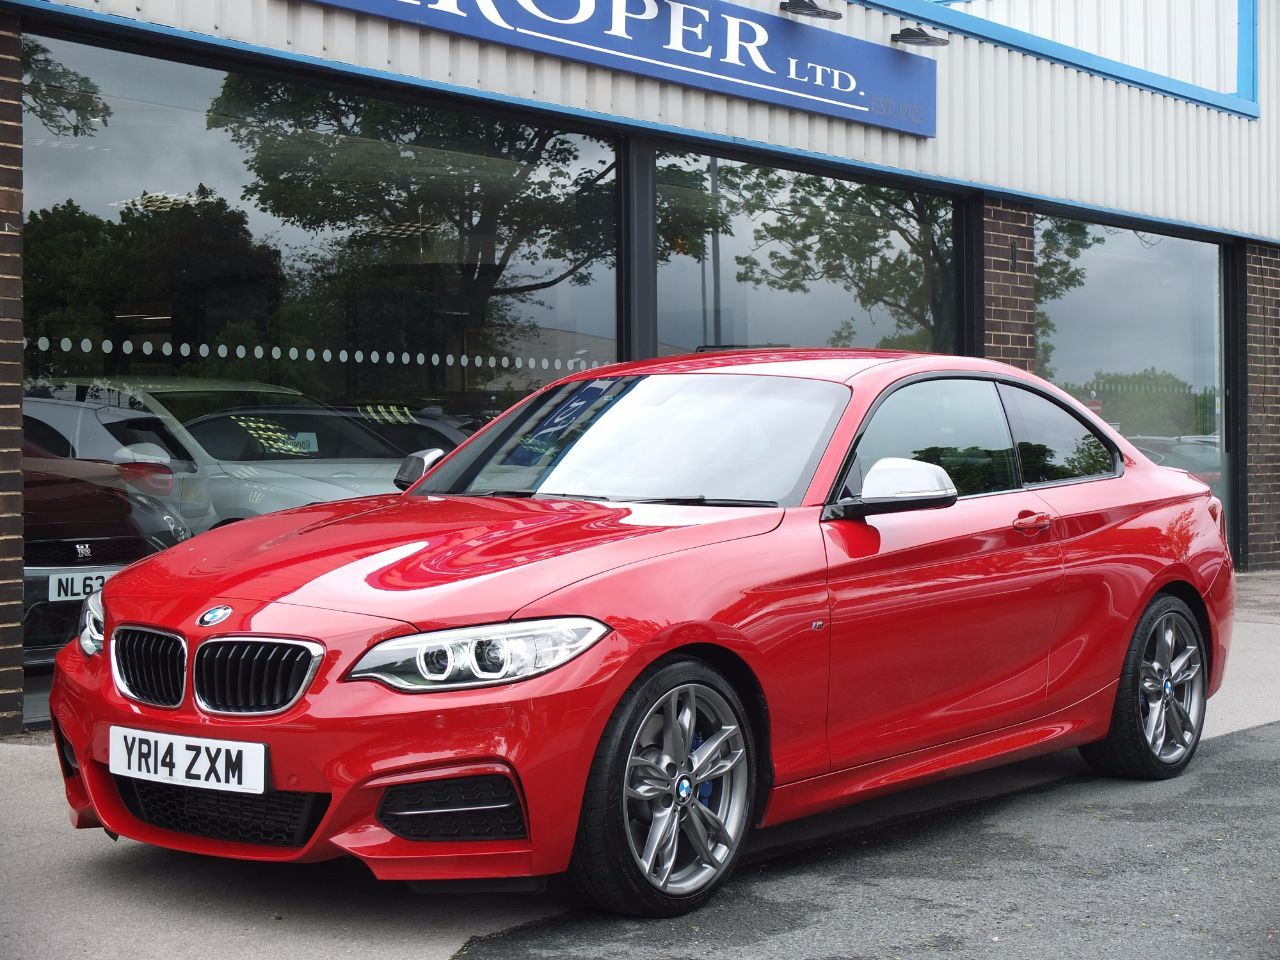 BMW 2 Series 3.0 M235i Step Auto ++++Spec Coupe Petrol Melbourne Red MetallicBMW 2 Series 3.0 M235i Step Auto ++++Spec Coupe Petrol Melbourne Red Metallic at fa Roper Ltd Bradford